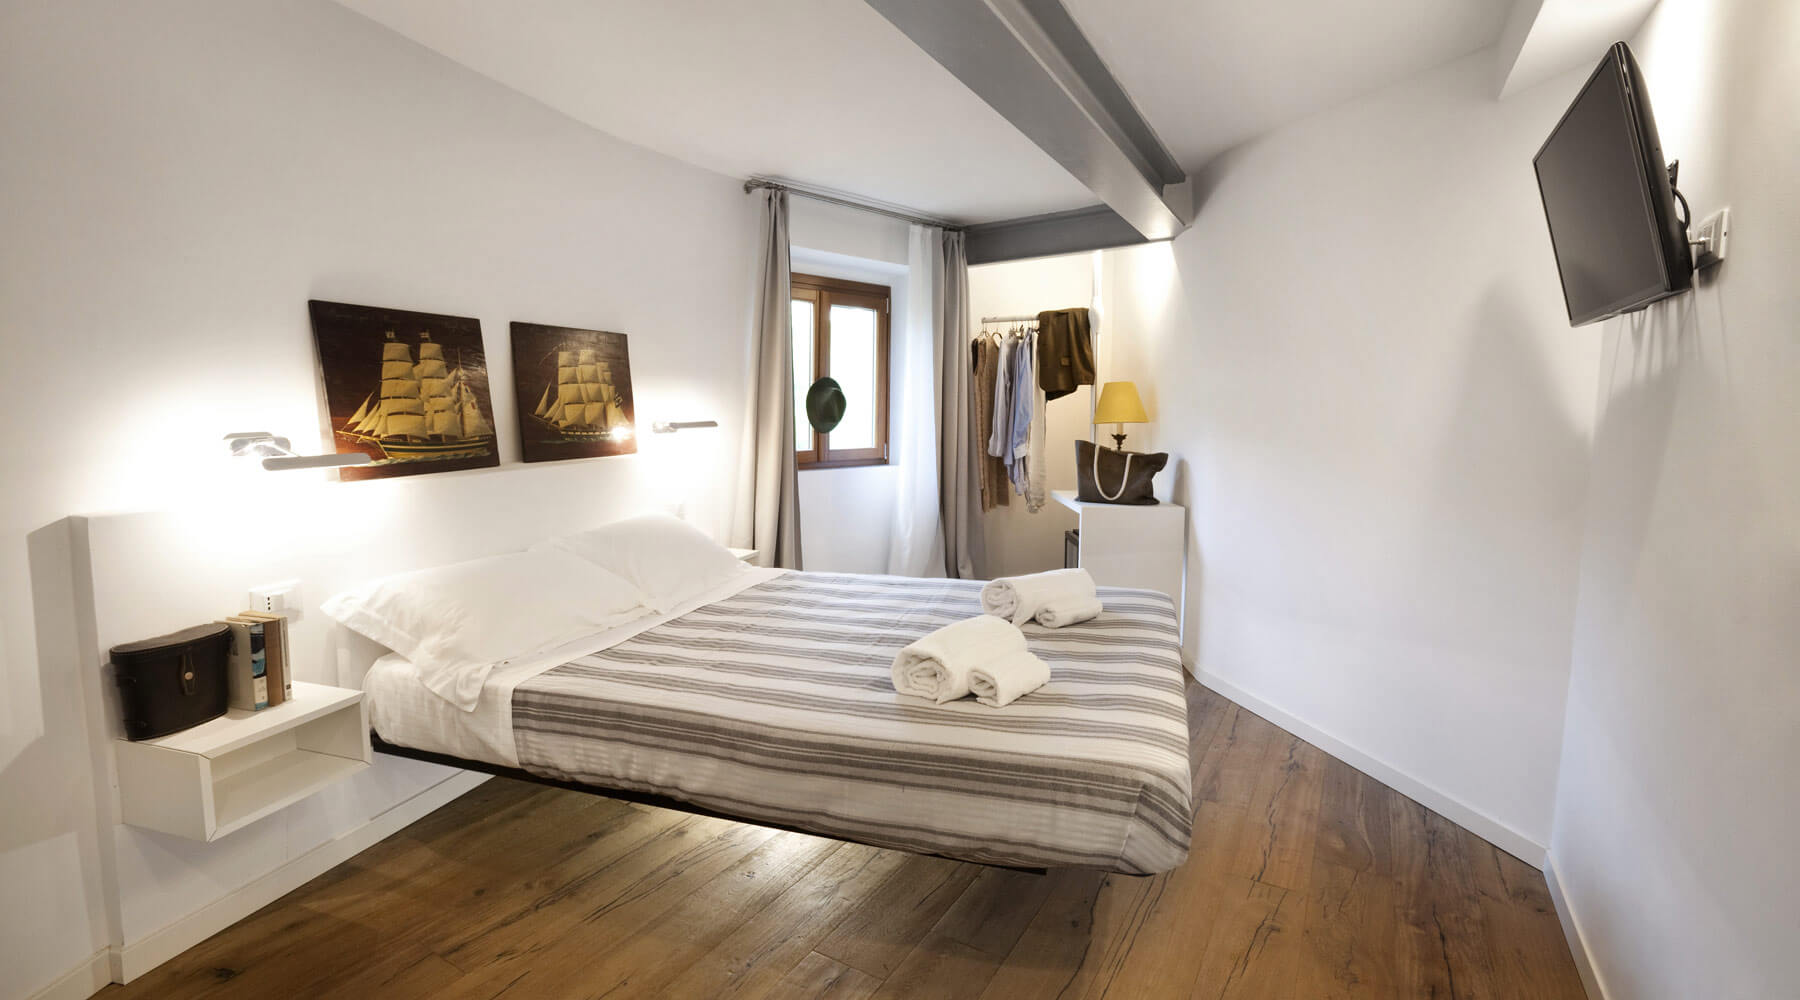 Lago welcome portovenere hotel di design lago - Camera da letto berloni ...